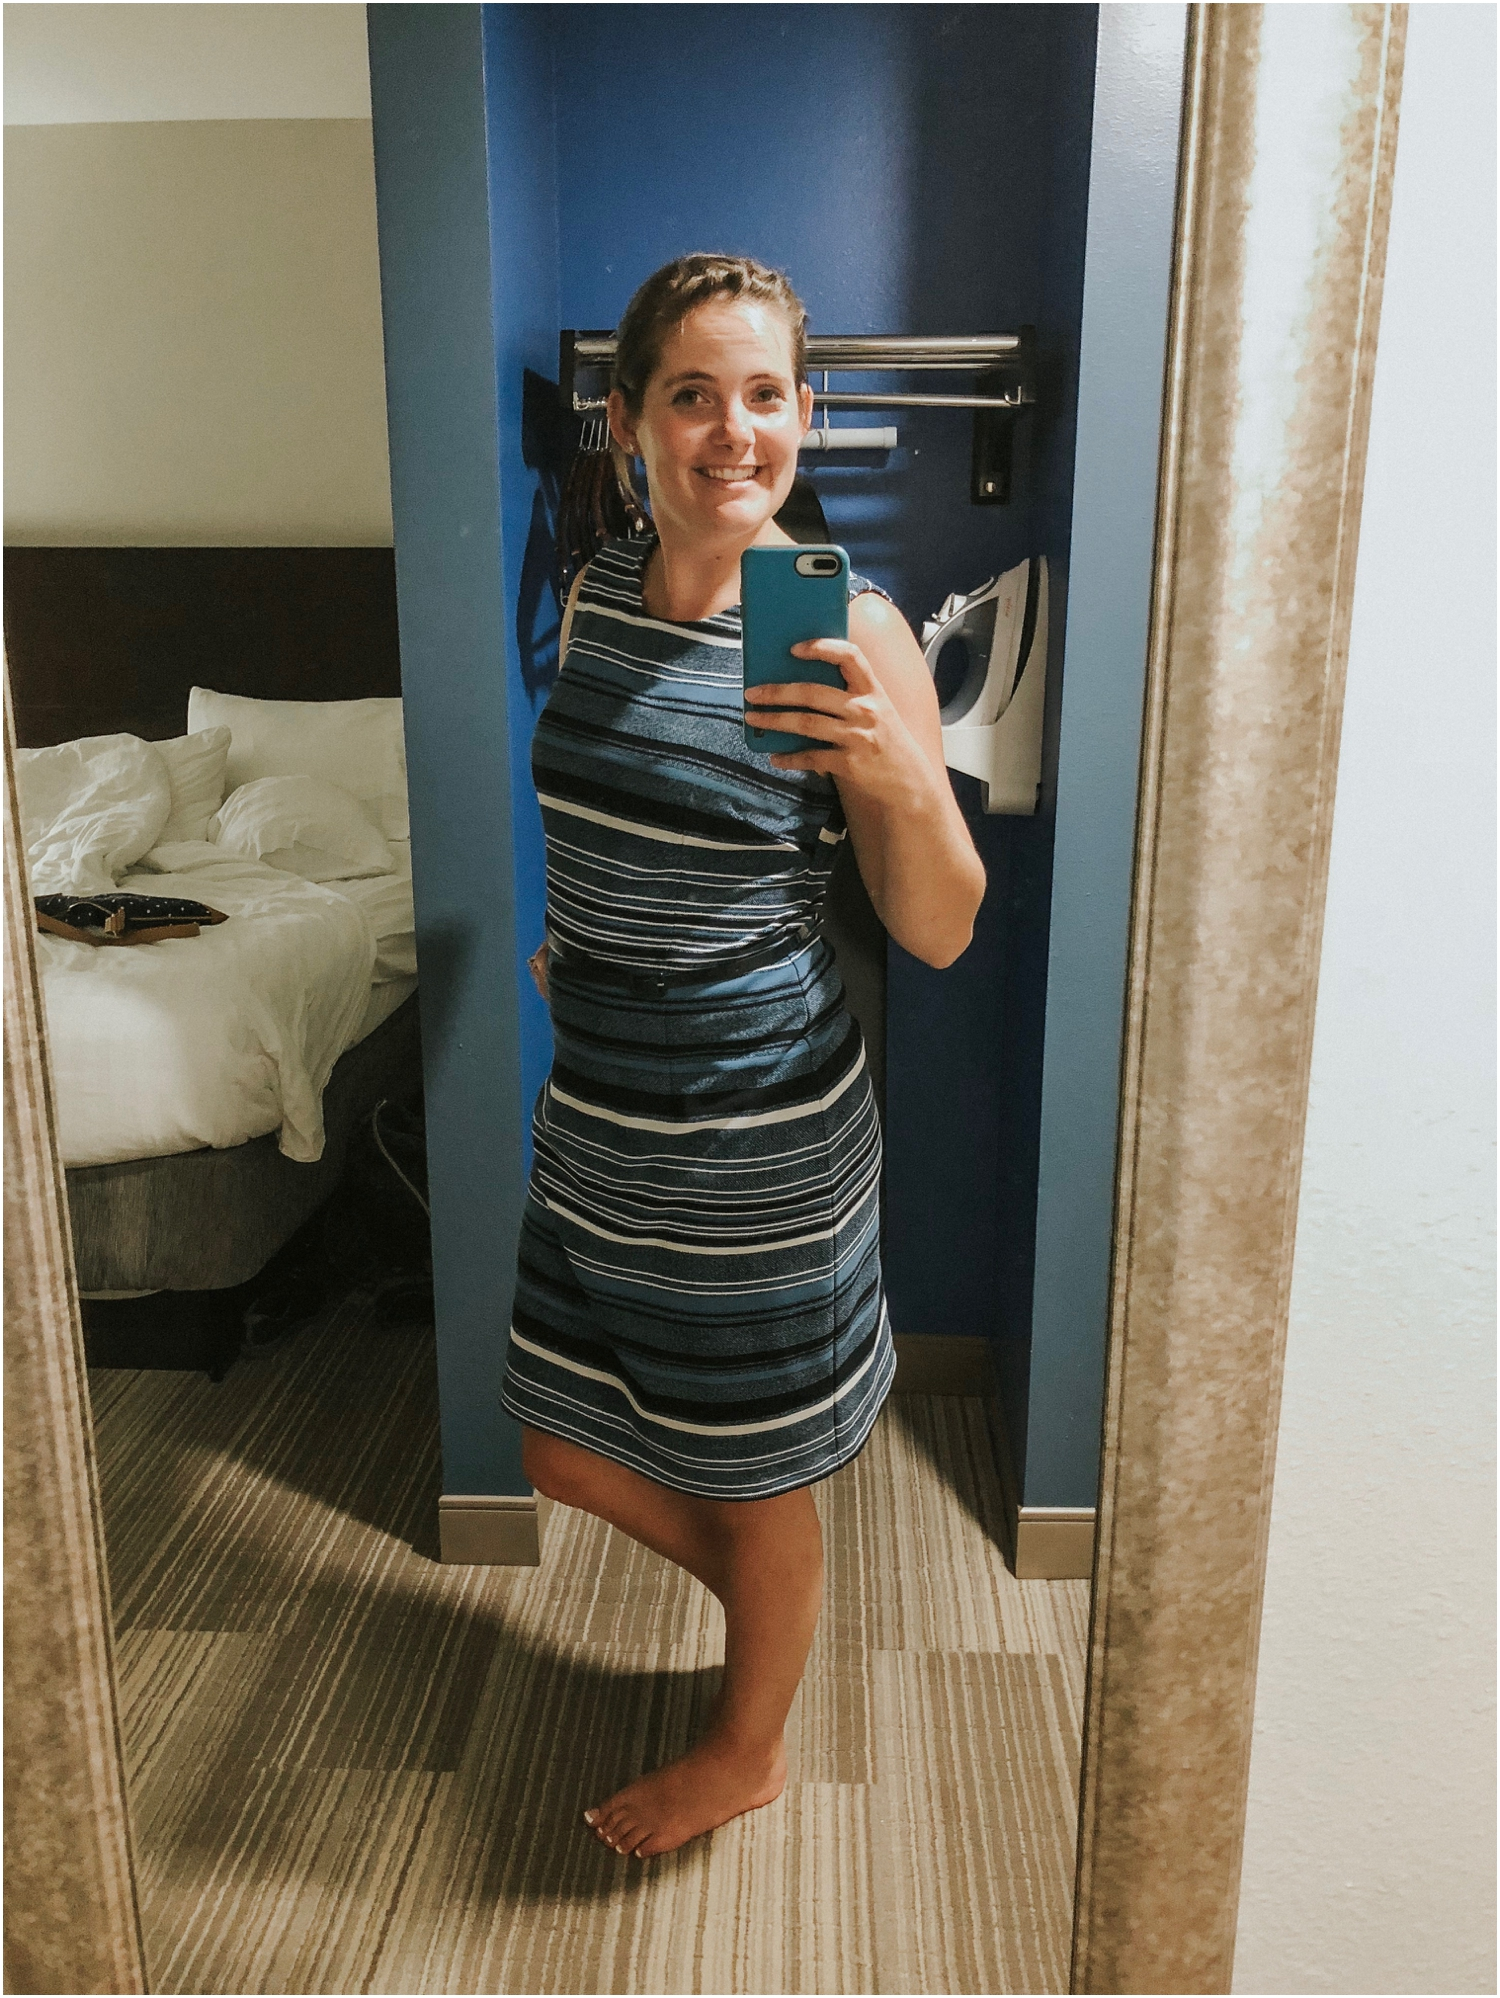 Last year, I only had two dresses that I wore all year. This year, I had a rotation of 4-5 new ones! Obviously, I was excited to wear this blue one that matched the hotel room.